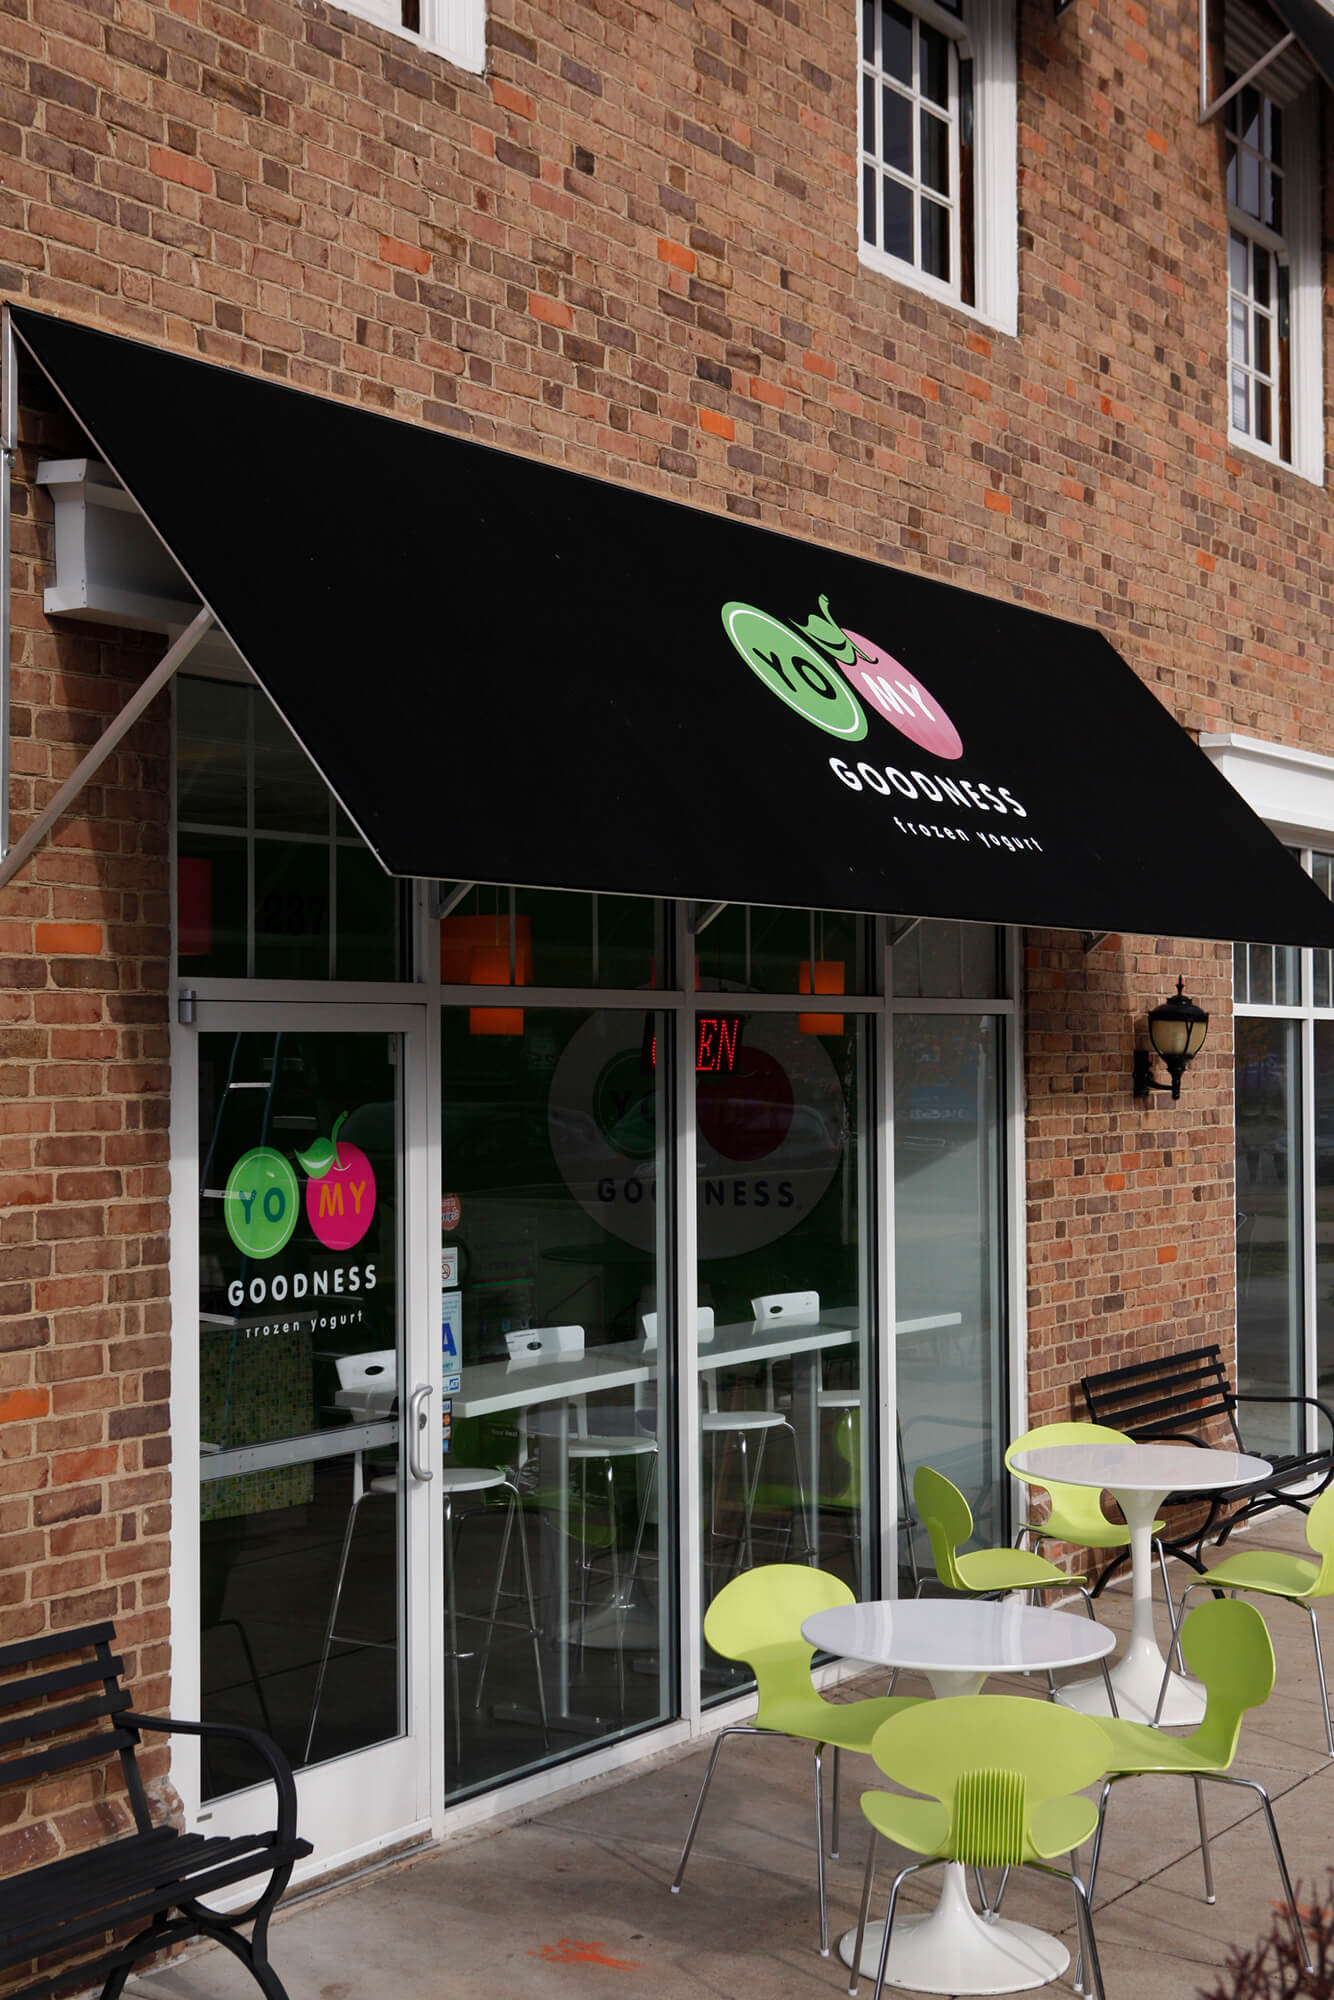 A yogurt shop welcomes customers with a black awning with graphics